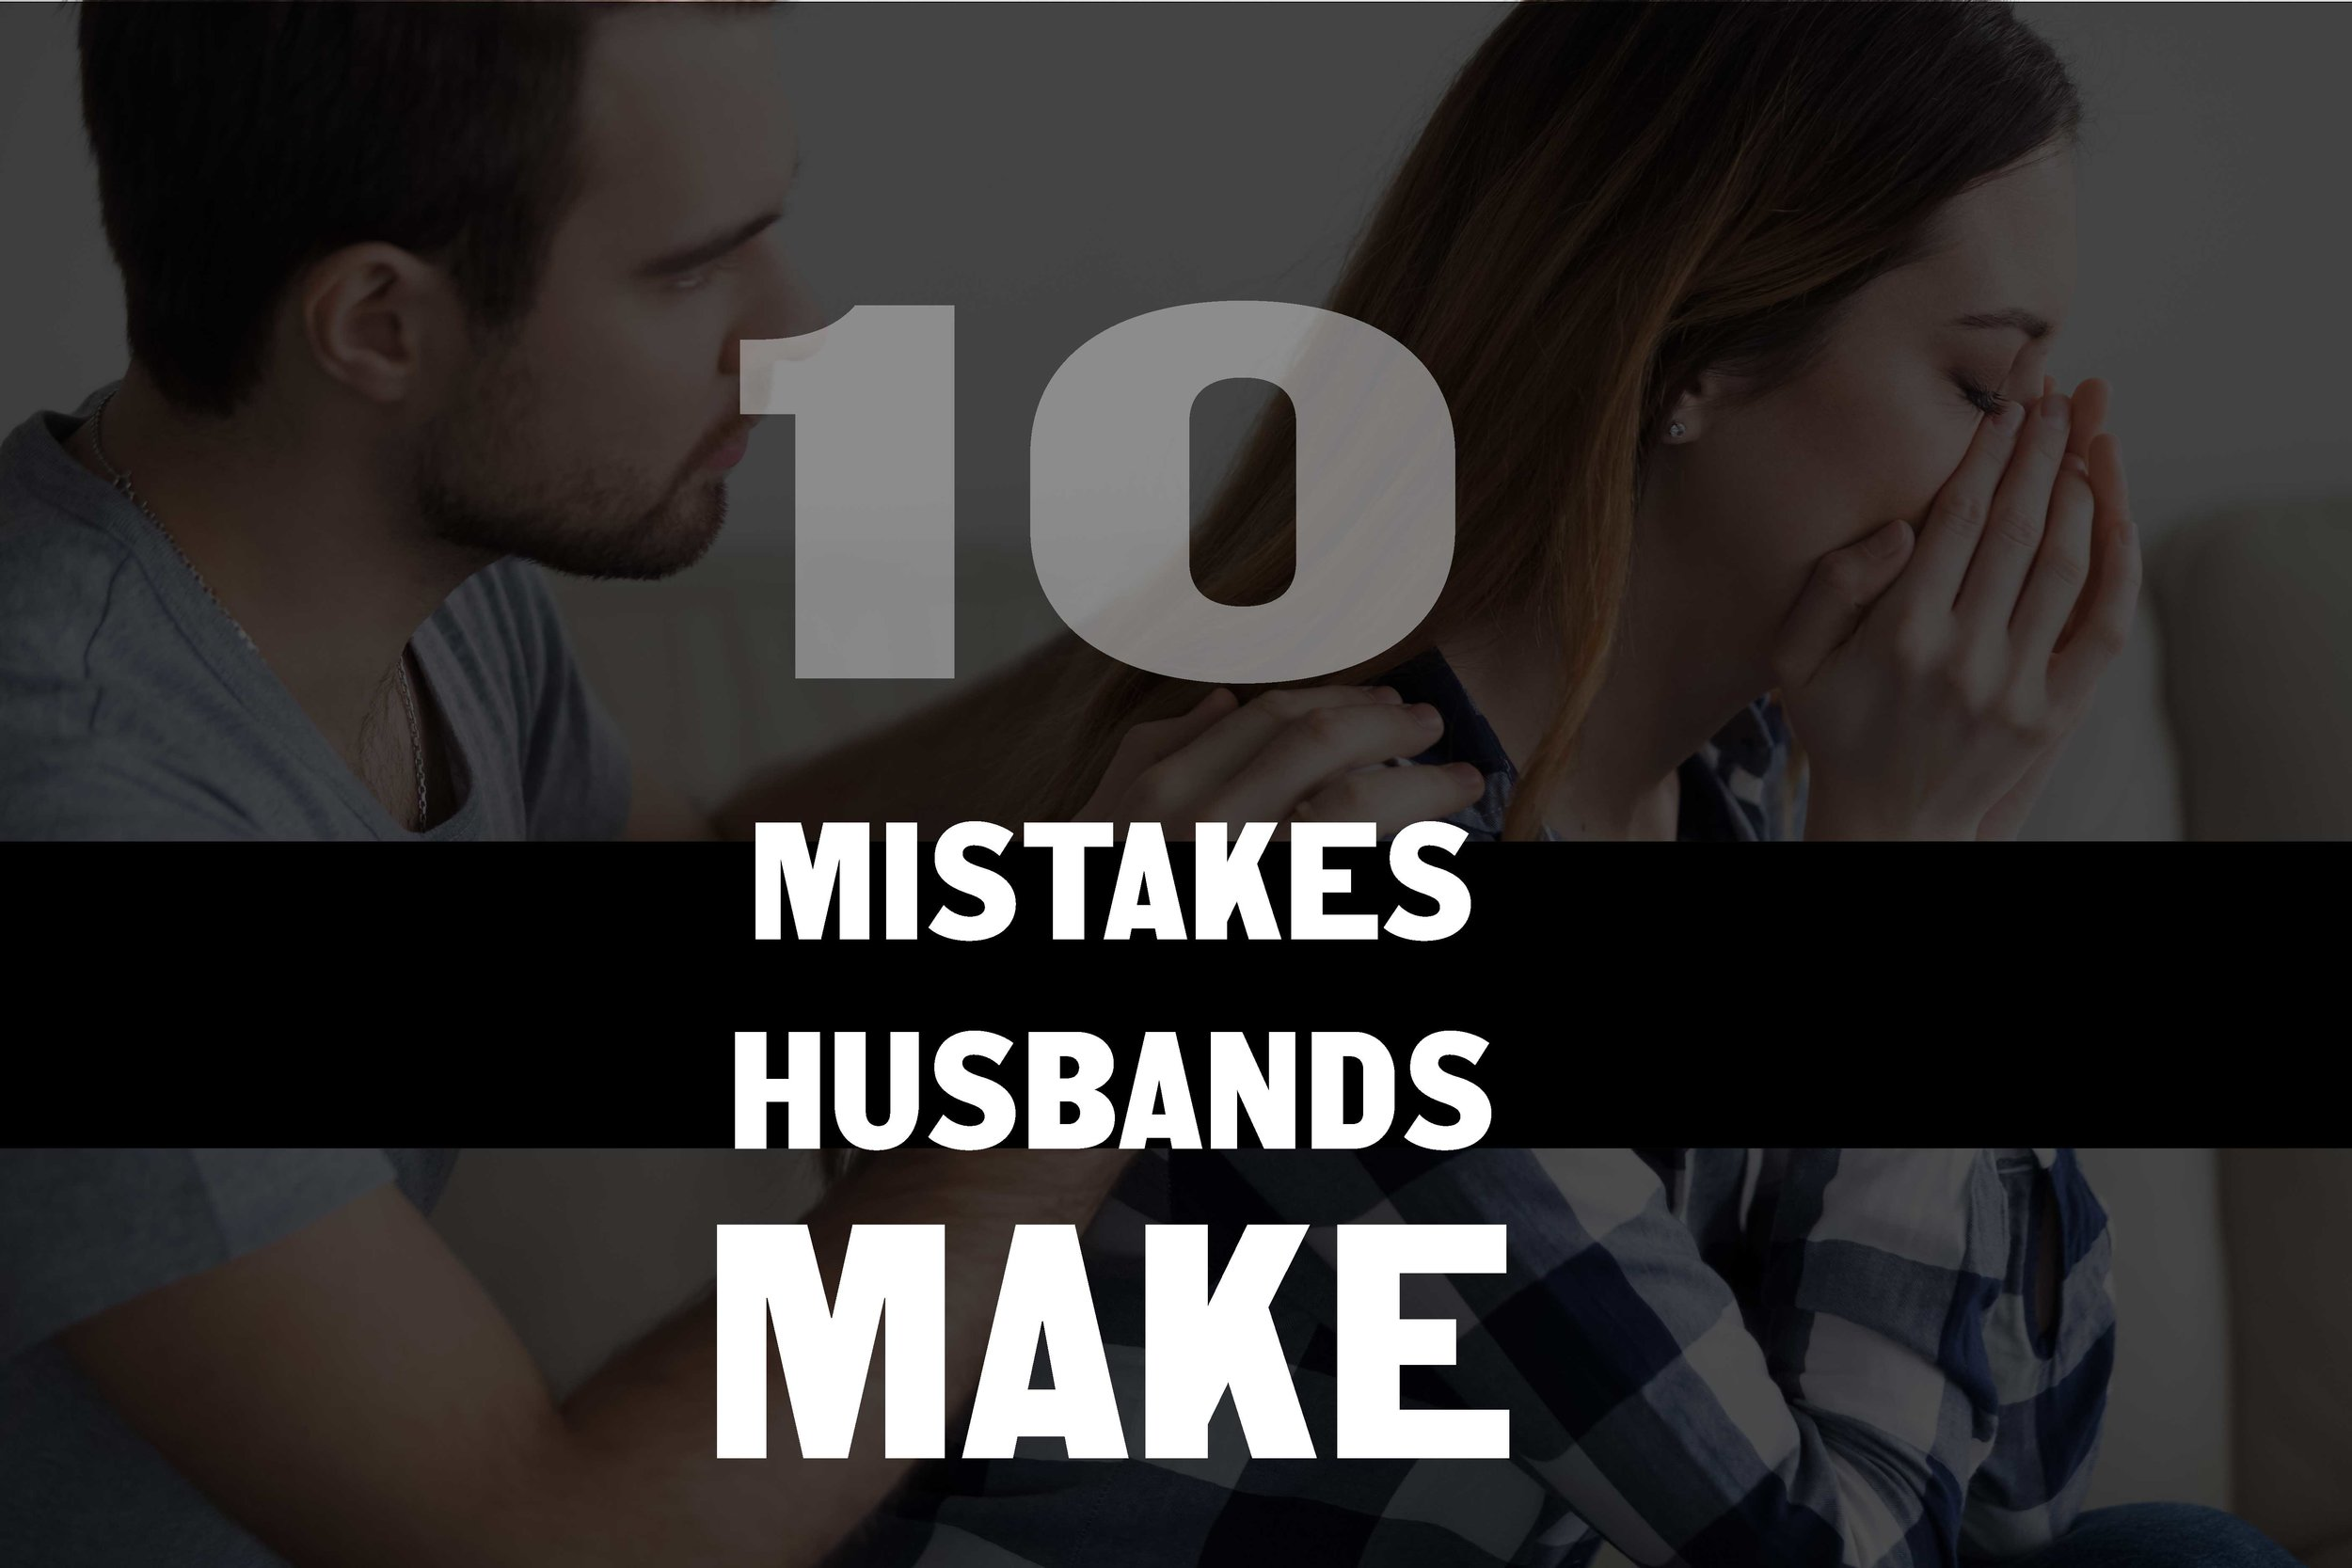 10-Mistakles-Husbands-Make.jpg